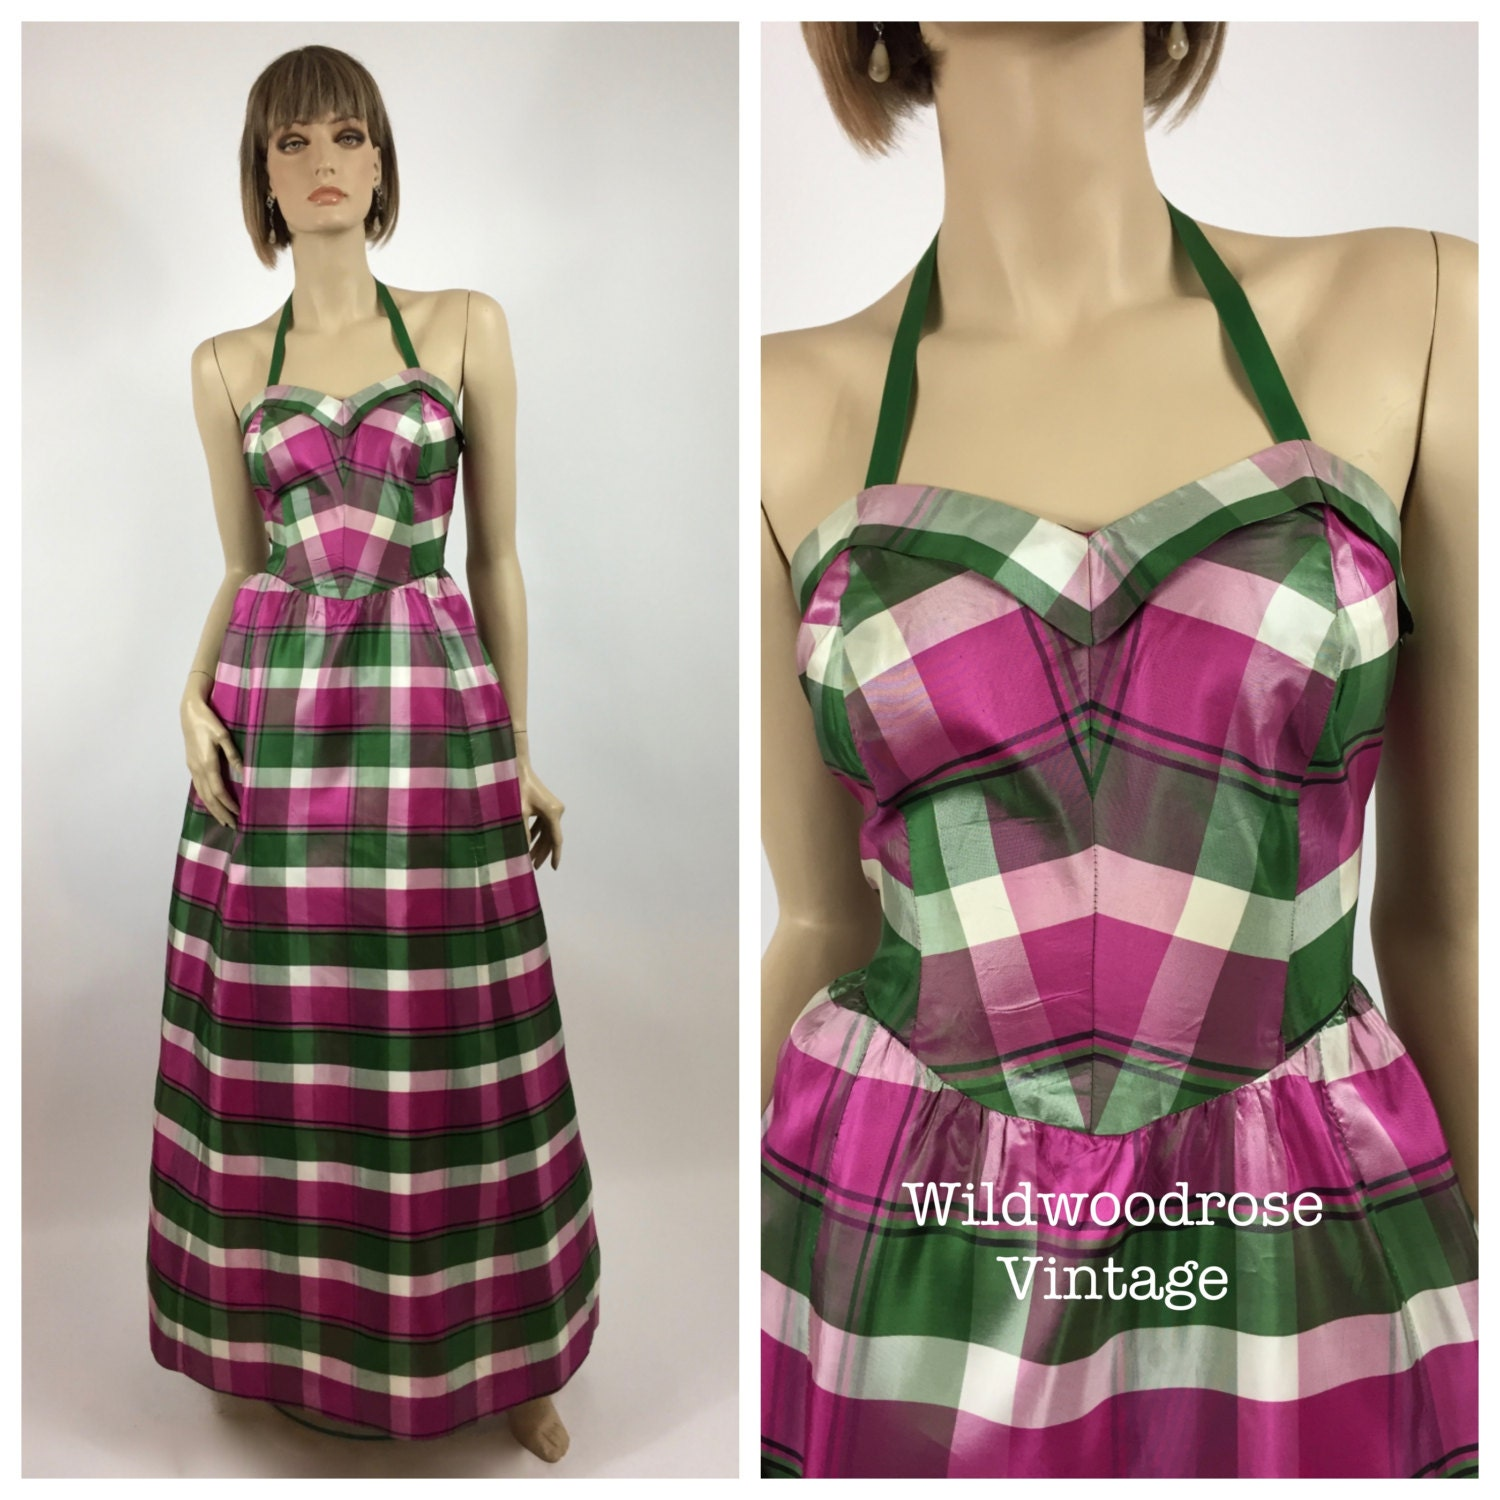 7d29ae0a0 Vintage 1950's Green, Pink and White Plaid Taffeta Prom Gown - New ...